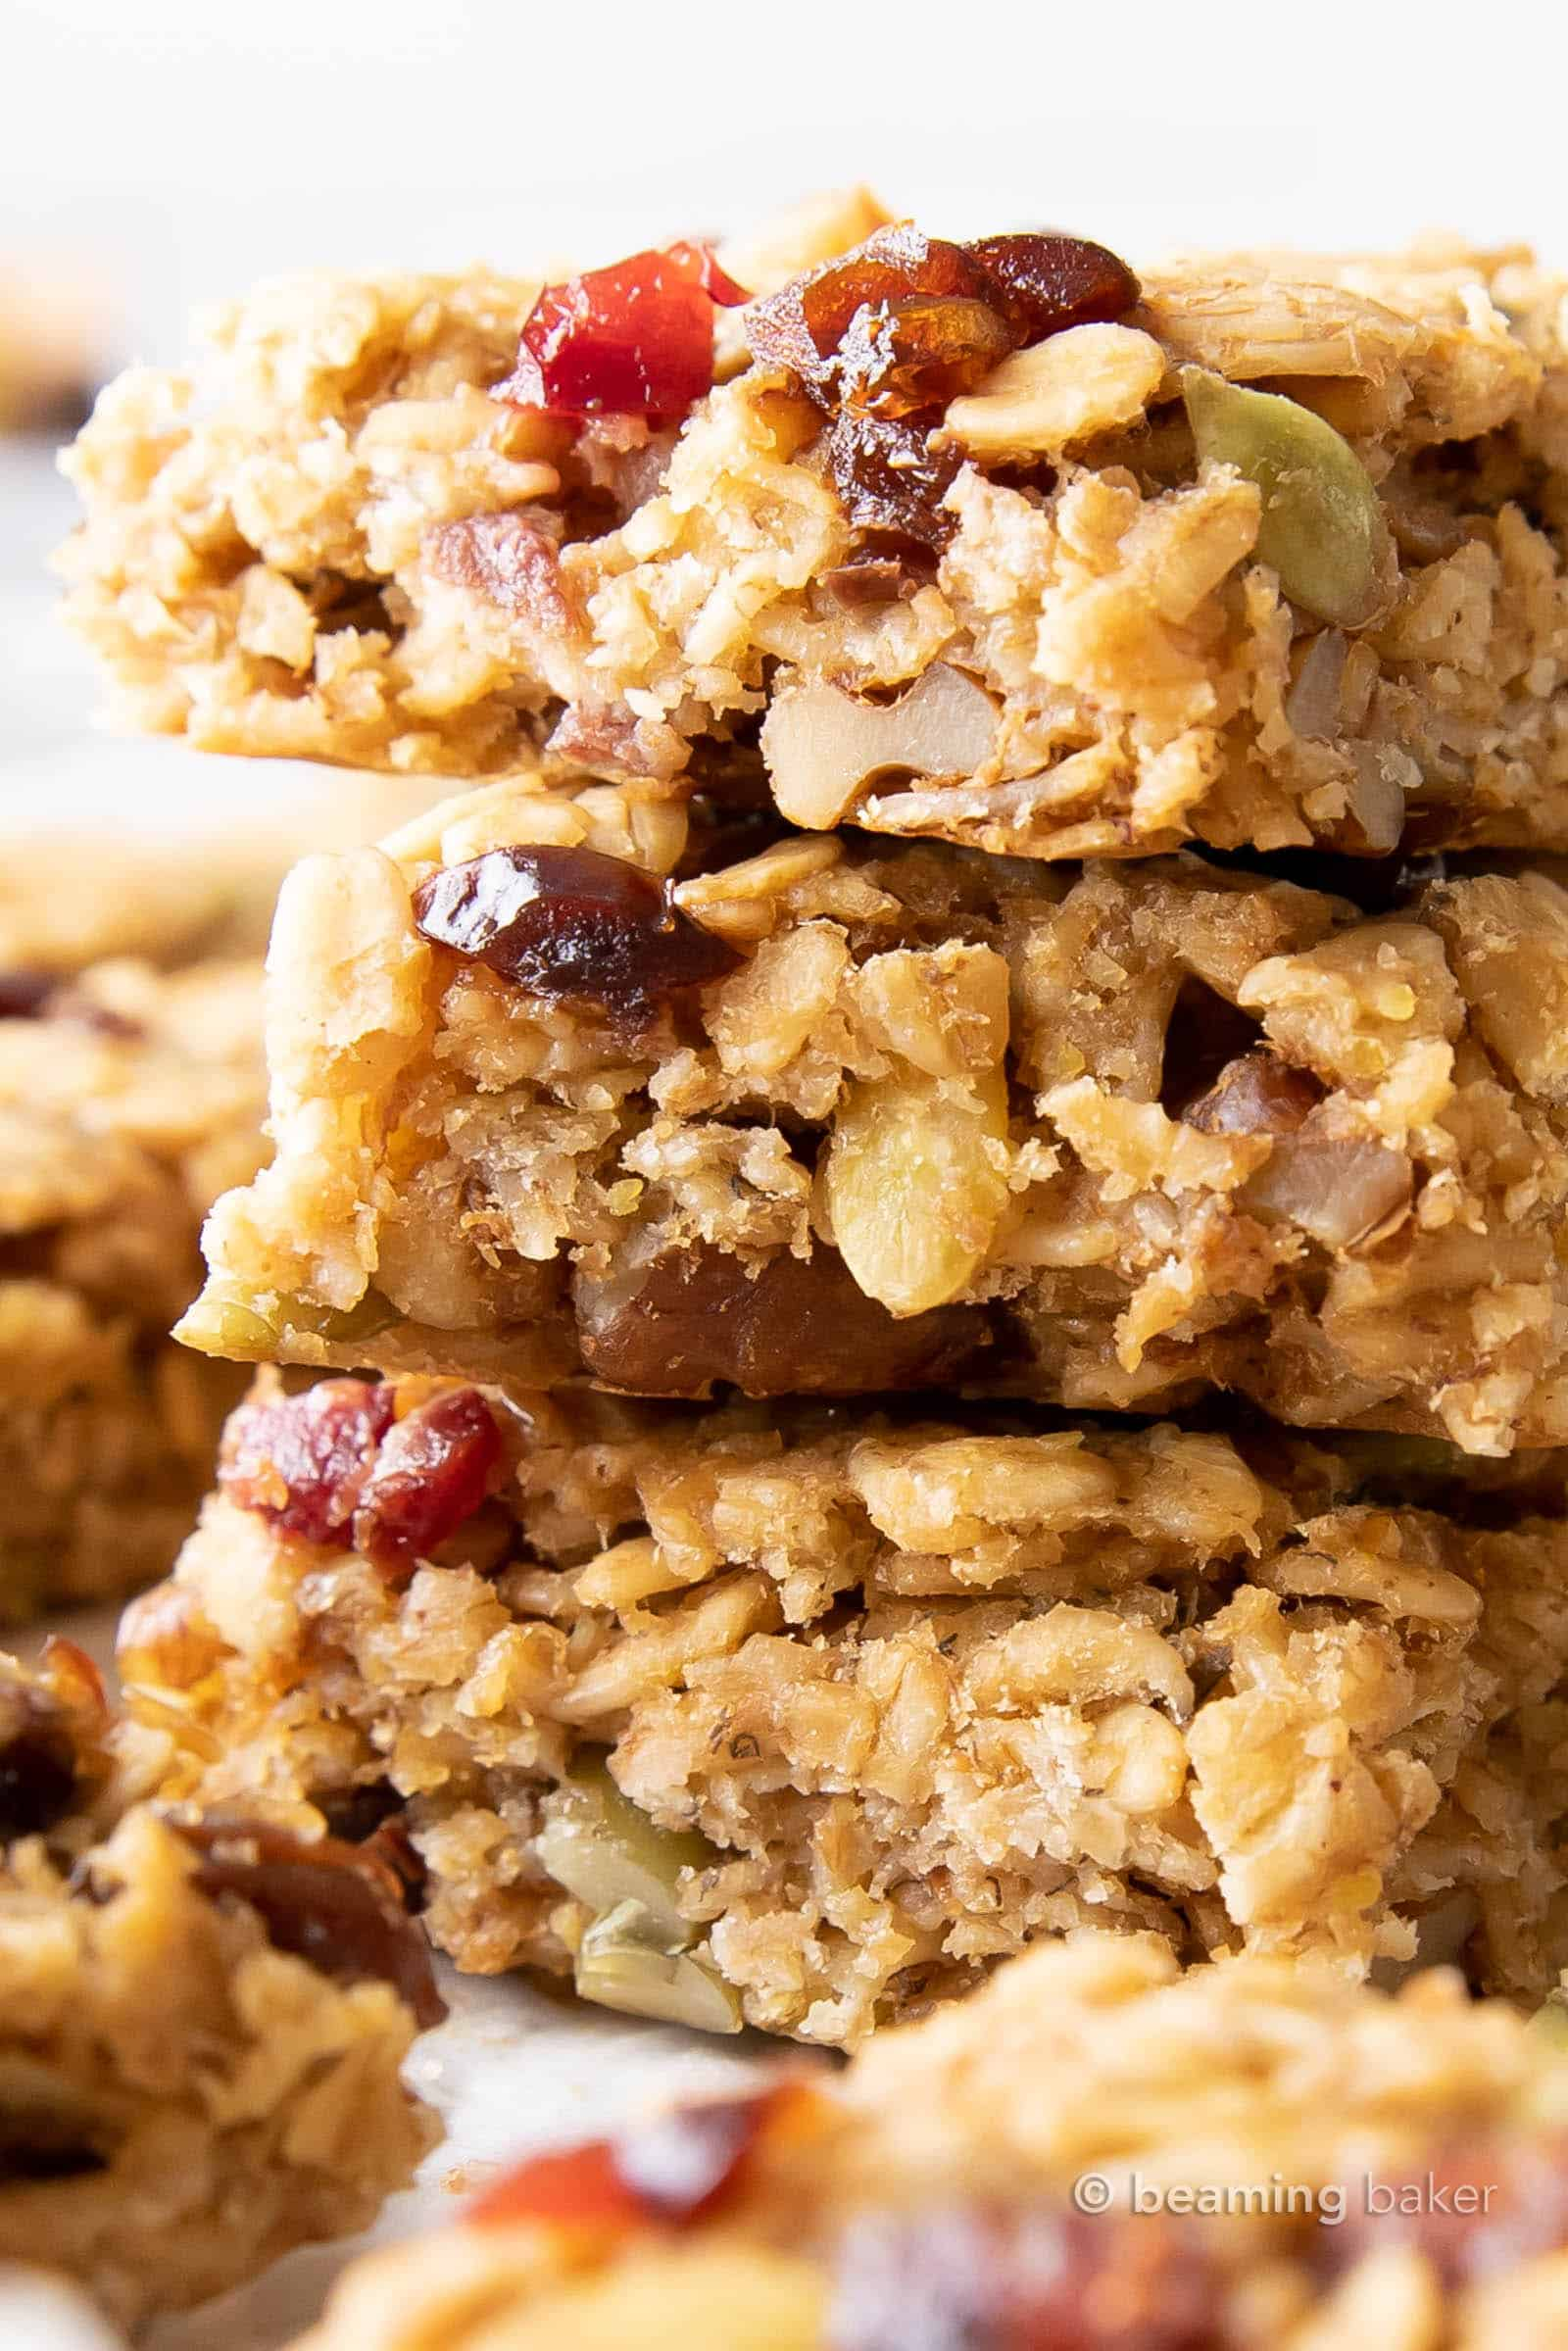 Healthy Breakfast Bars: this healthy breakfast bars recipe yields deliciously soft bars bursting with fruits, nuts and seeds. Easy to customize, Quick & Easy, the Best Healthy Breakfast Bars! #healthy #breakfast #healthyrecipe #breakfastrecipe | Recipe at BeamingBaker.com